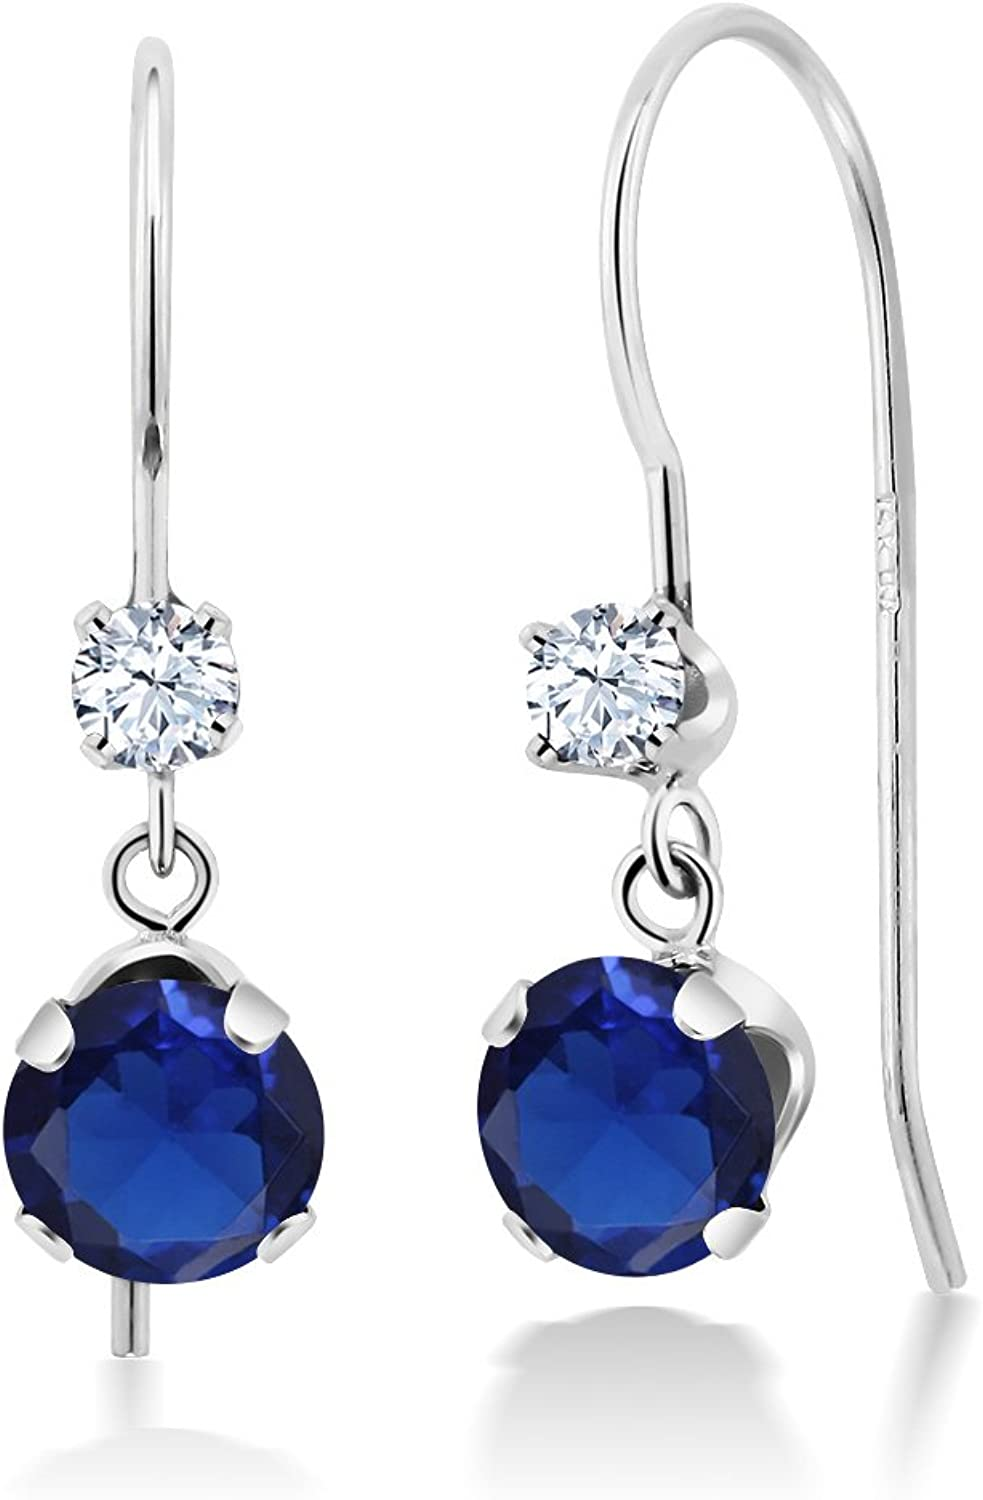 1.20 Ct Round bluee Simulated Sapphire 14K White gold Earrings